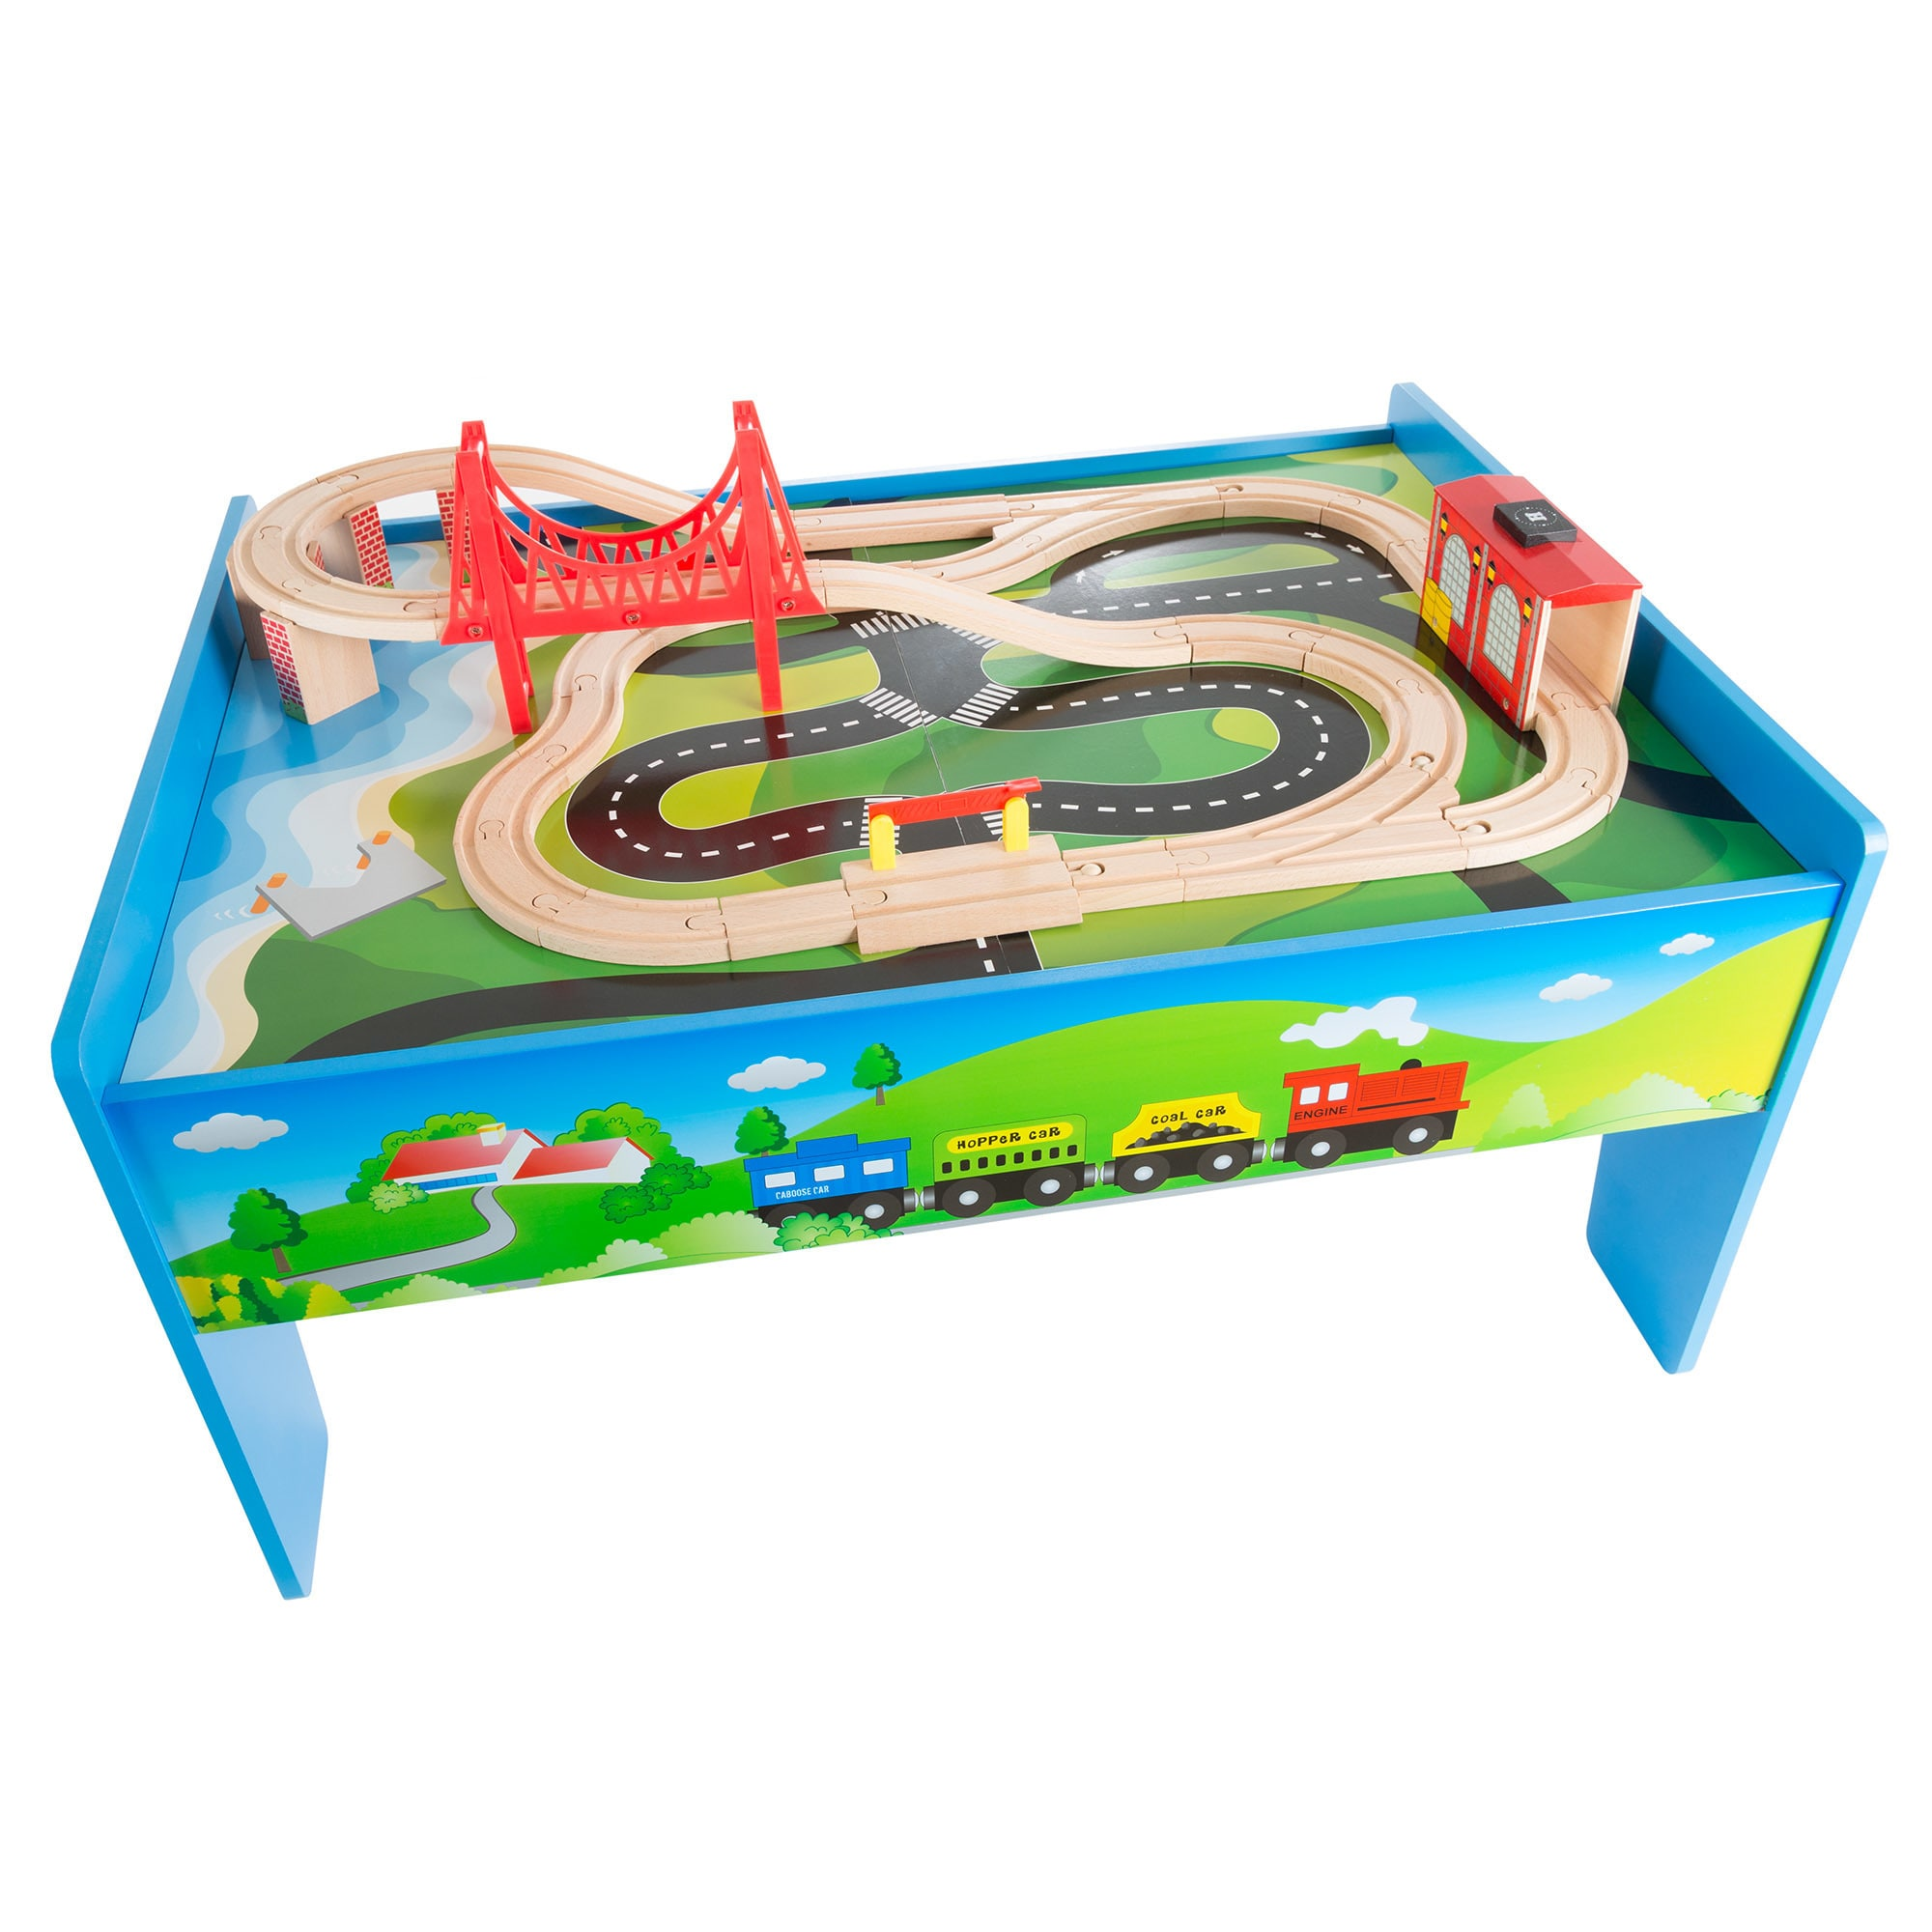 Wooden Train Set Table for Kids Deluxe Had Painted Wooden Set by Hey! Play! - Free Shipping Today - Overstock - 24811022  sc 1 st  Overstock.com & Wooden Train Set Table for Kids Deluxe Had Painted Wooden Set by ...